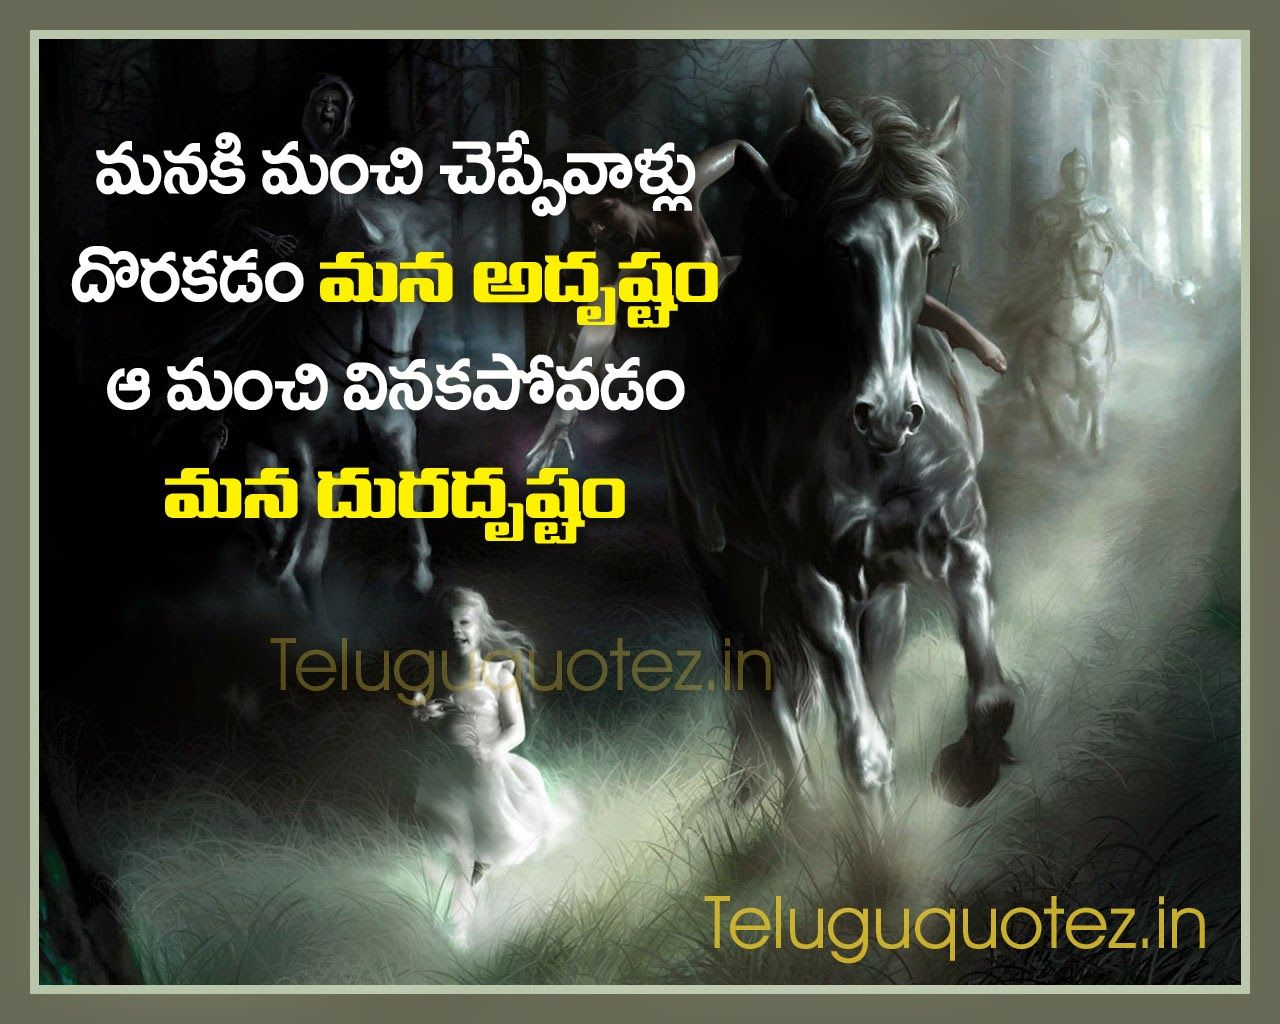 Teluguquotezin Life Quotes And Sayings In Telugu Language Quotes